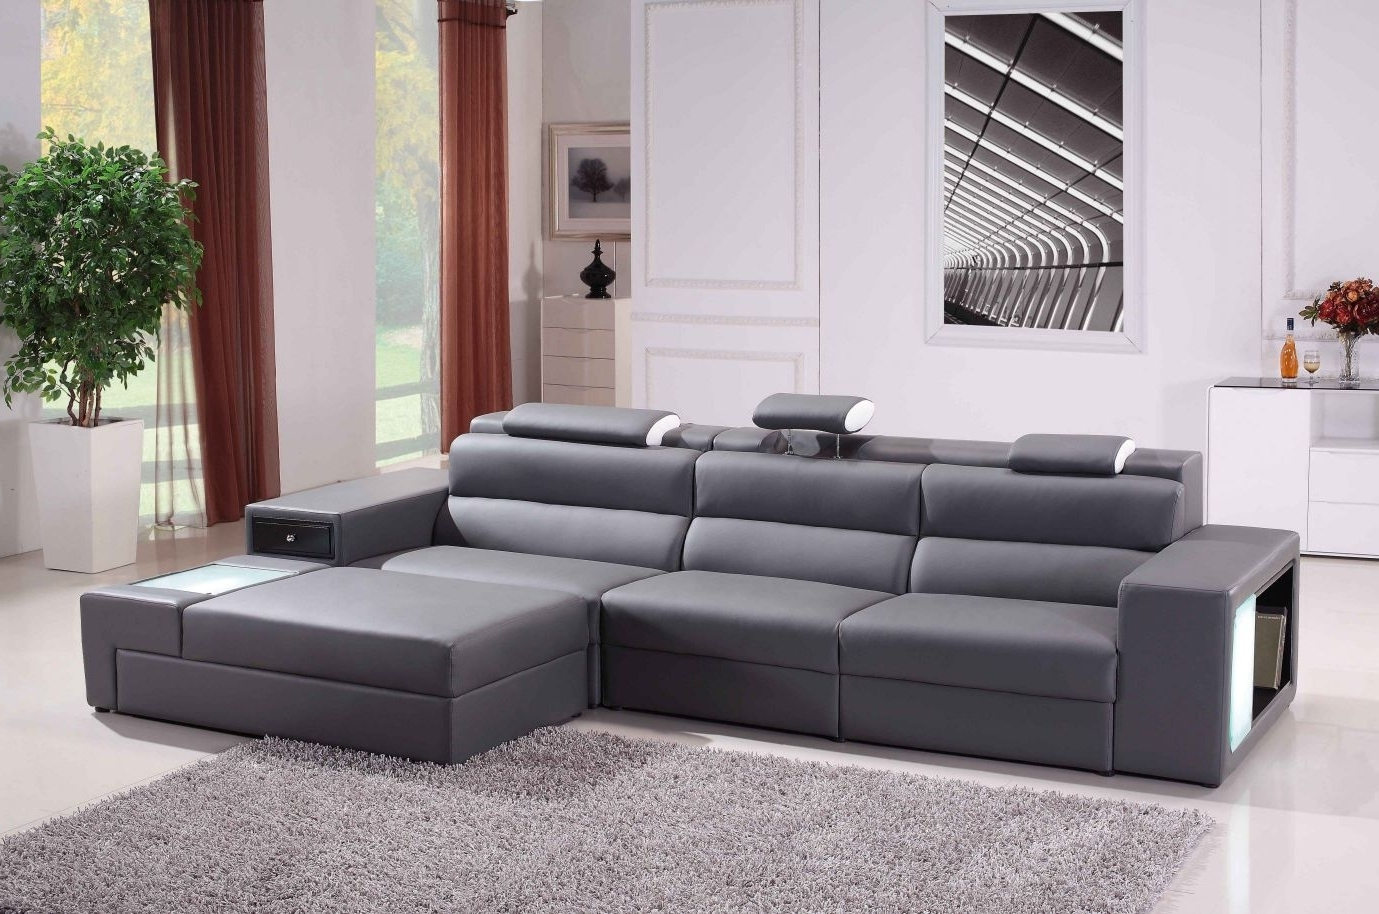 Best And Newest High Quality Sectional Sofas With Regard To Stunning Bedroom Grey Couch Red Sofa Chaise Real Leather Picture (View 14 of 15)